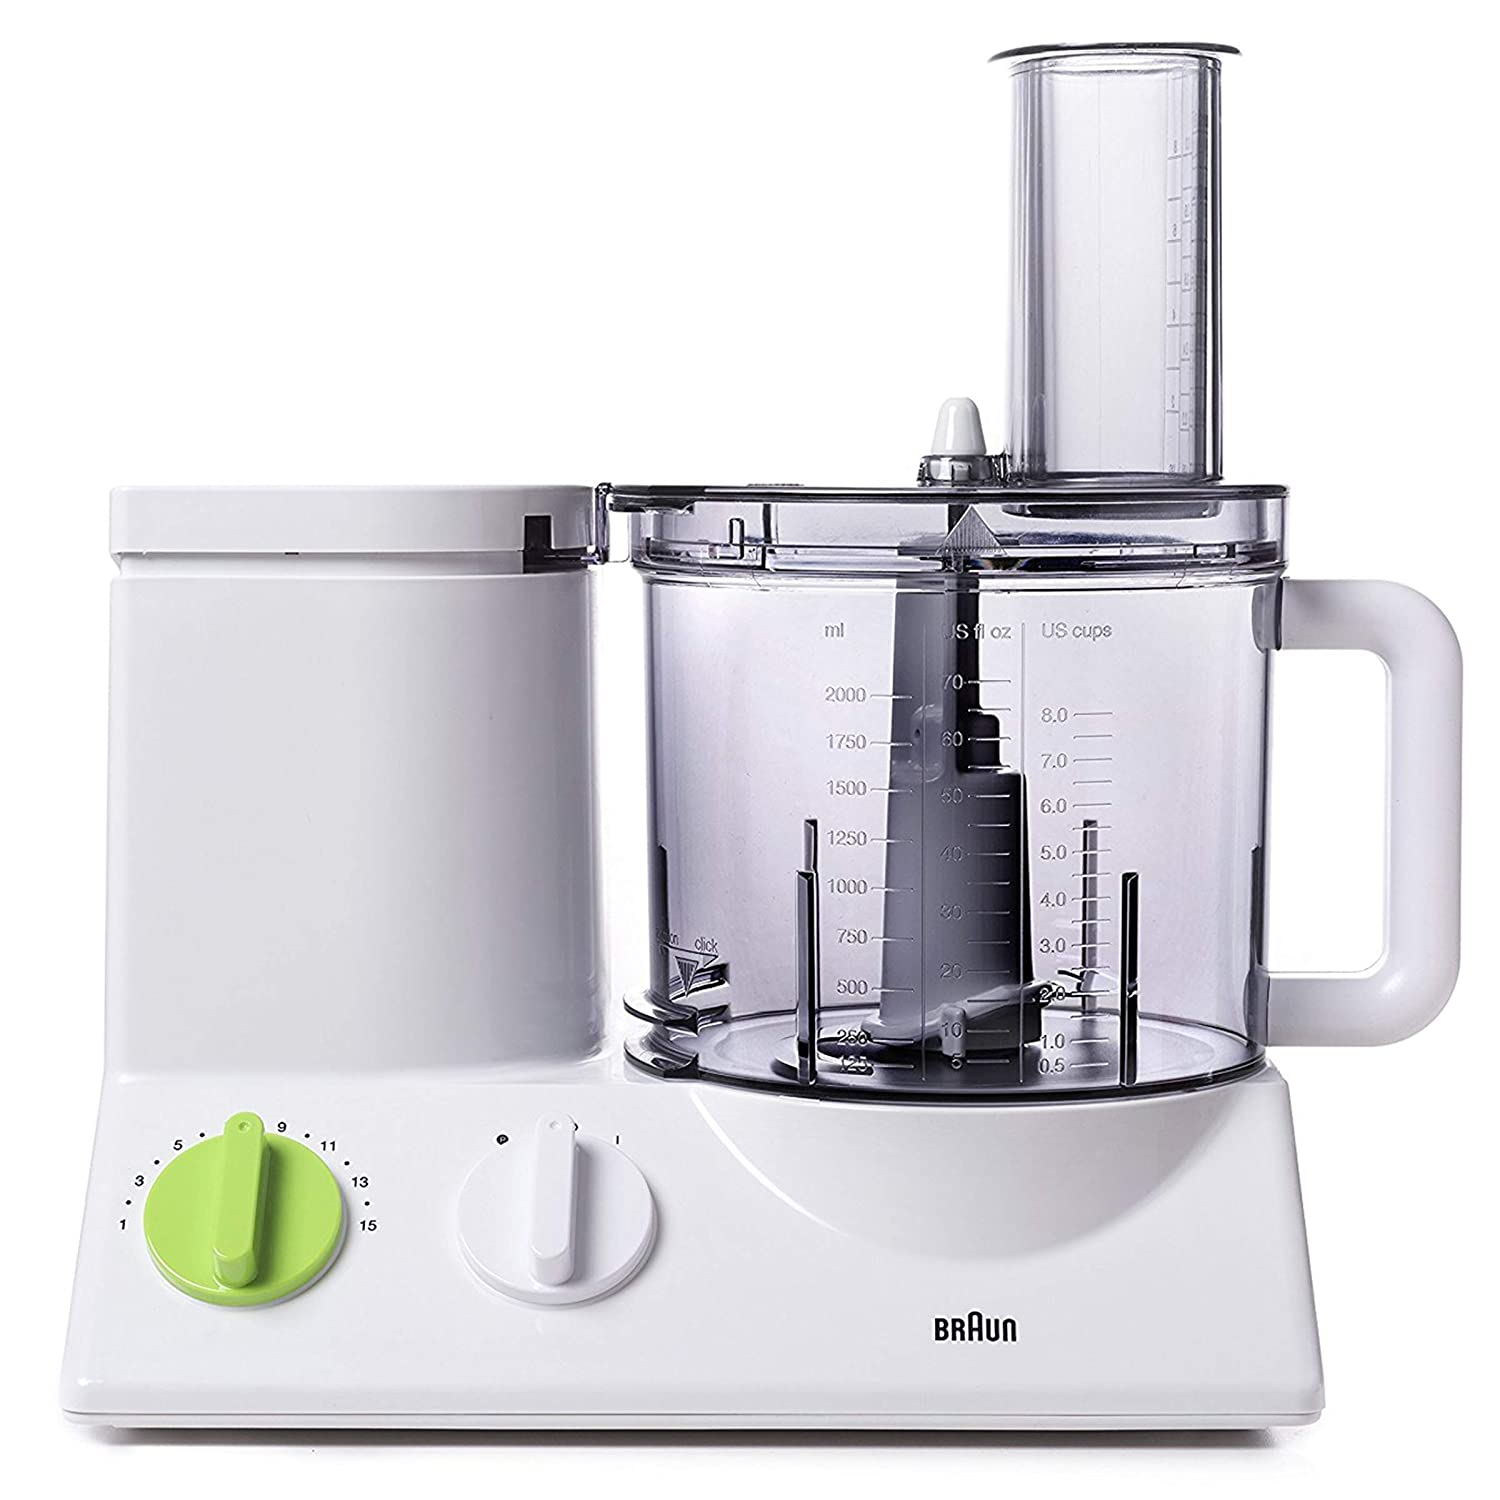 Braun FP3020 12 Cup Food Processor Ultra Quiet Powerful motor, includes 7 Attachment Blades + Chopper and Citrus Juicer , Made in Europe with German Engineering (Renewed)